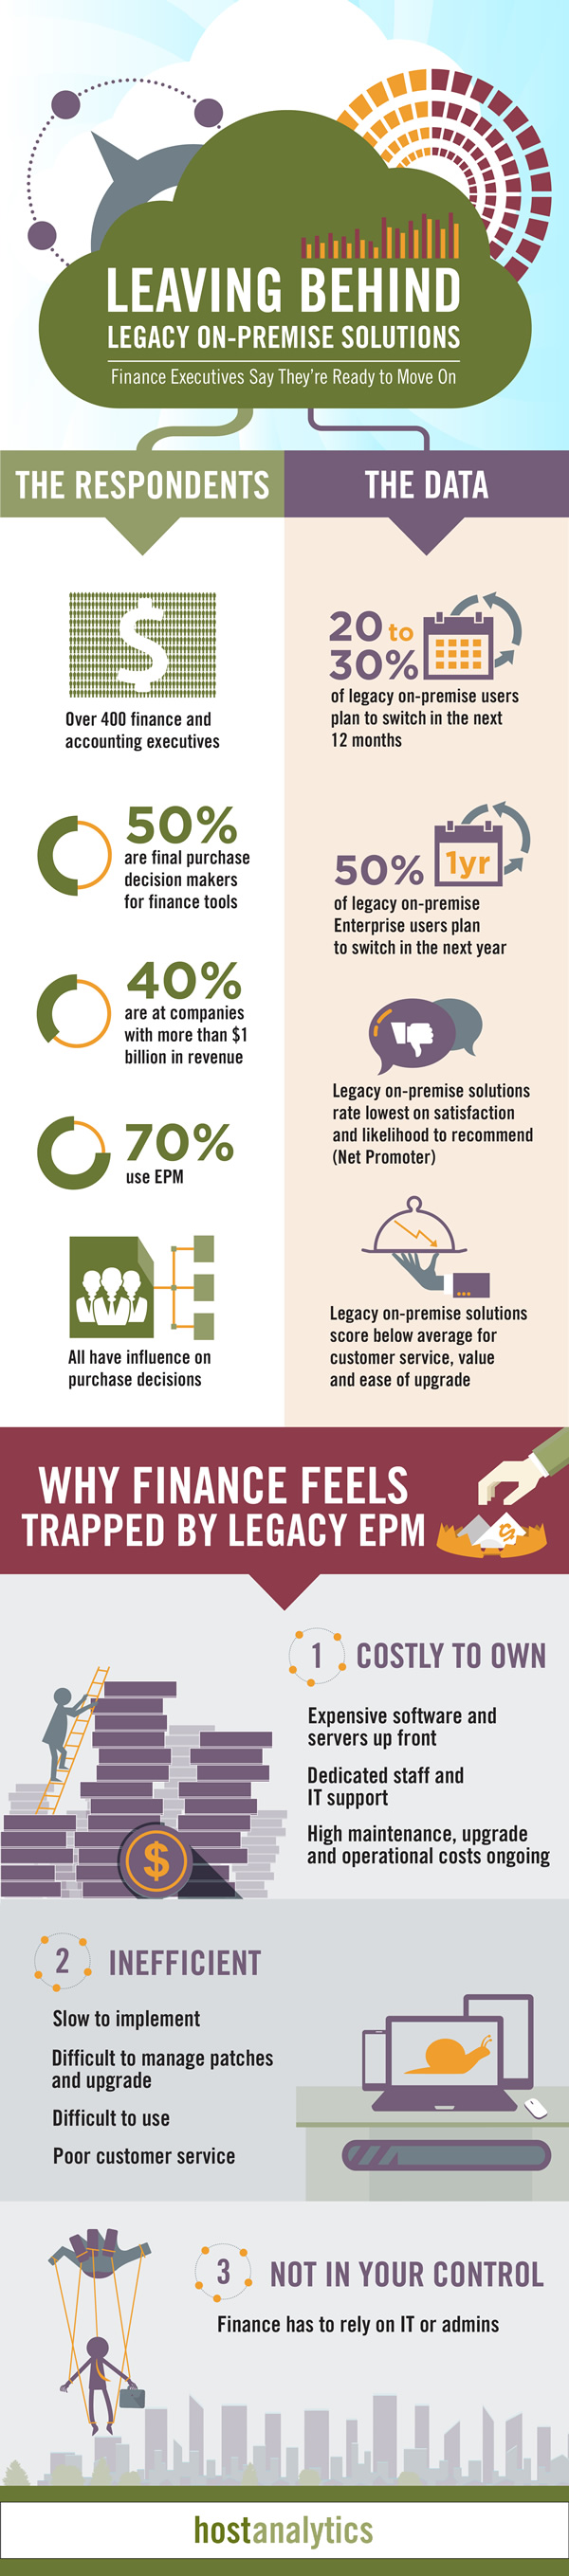 host-analytics-infographic-leaving-behind-legacy-on-premise-solutions